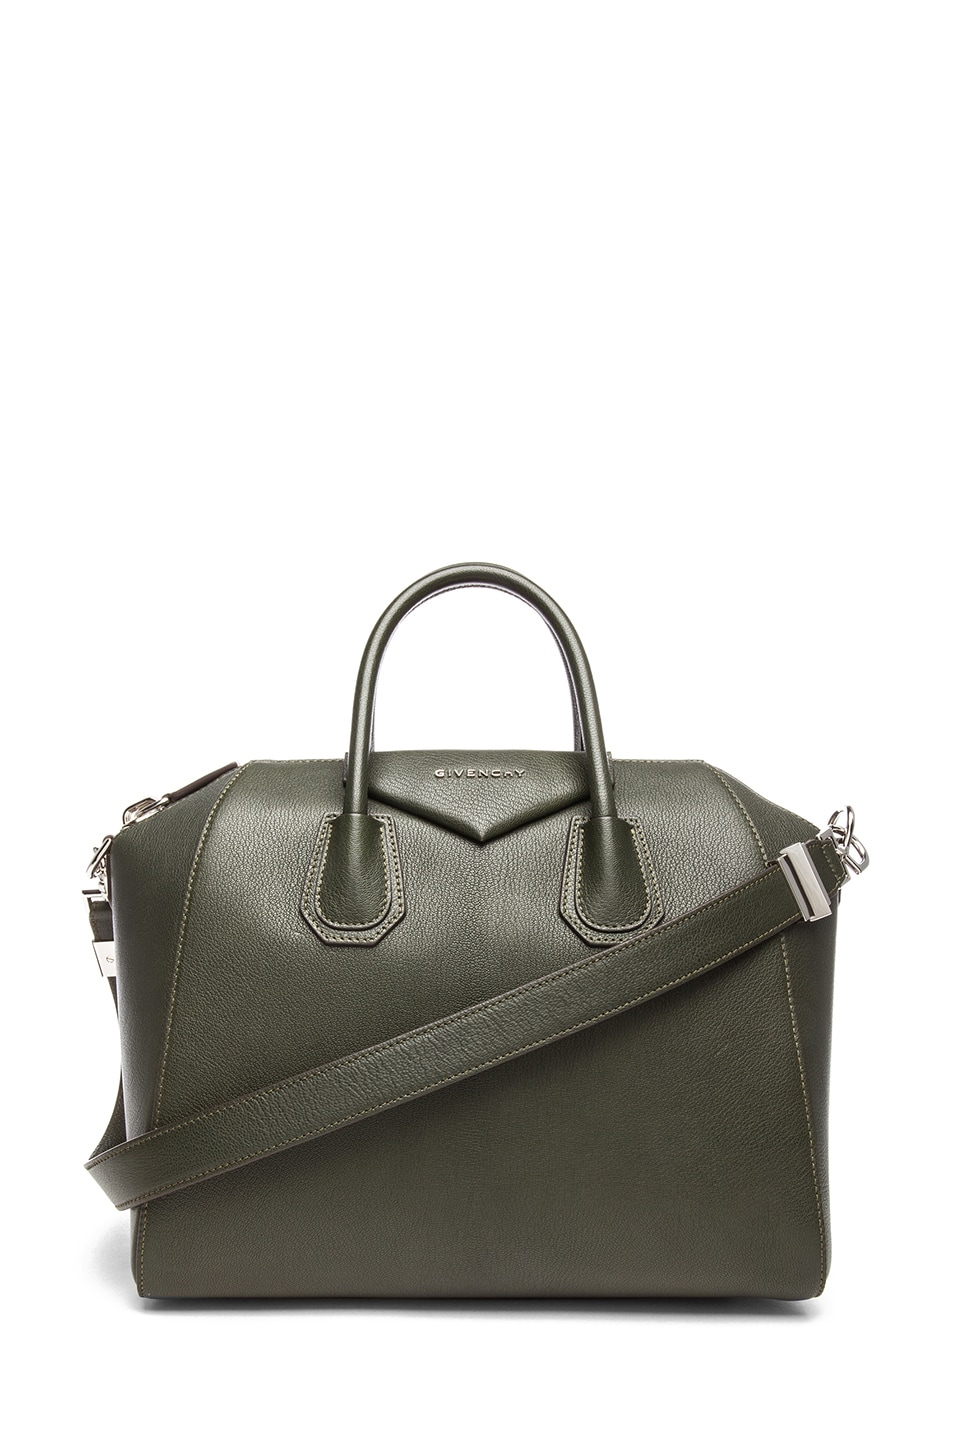 Image 1 of GIVENCHY Medium Antigona Bottle Green